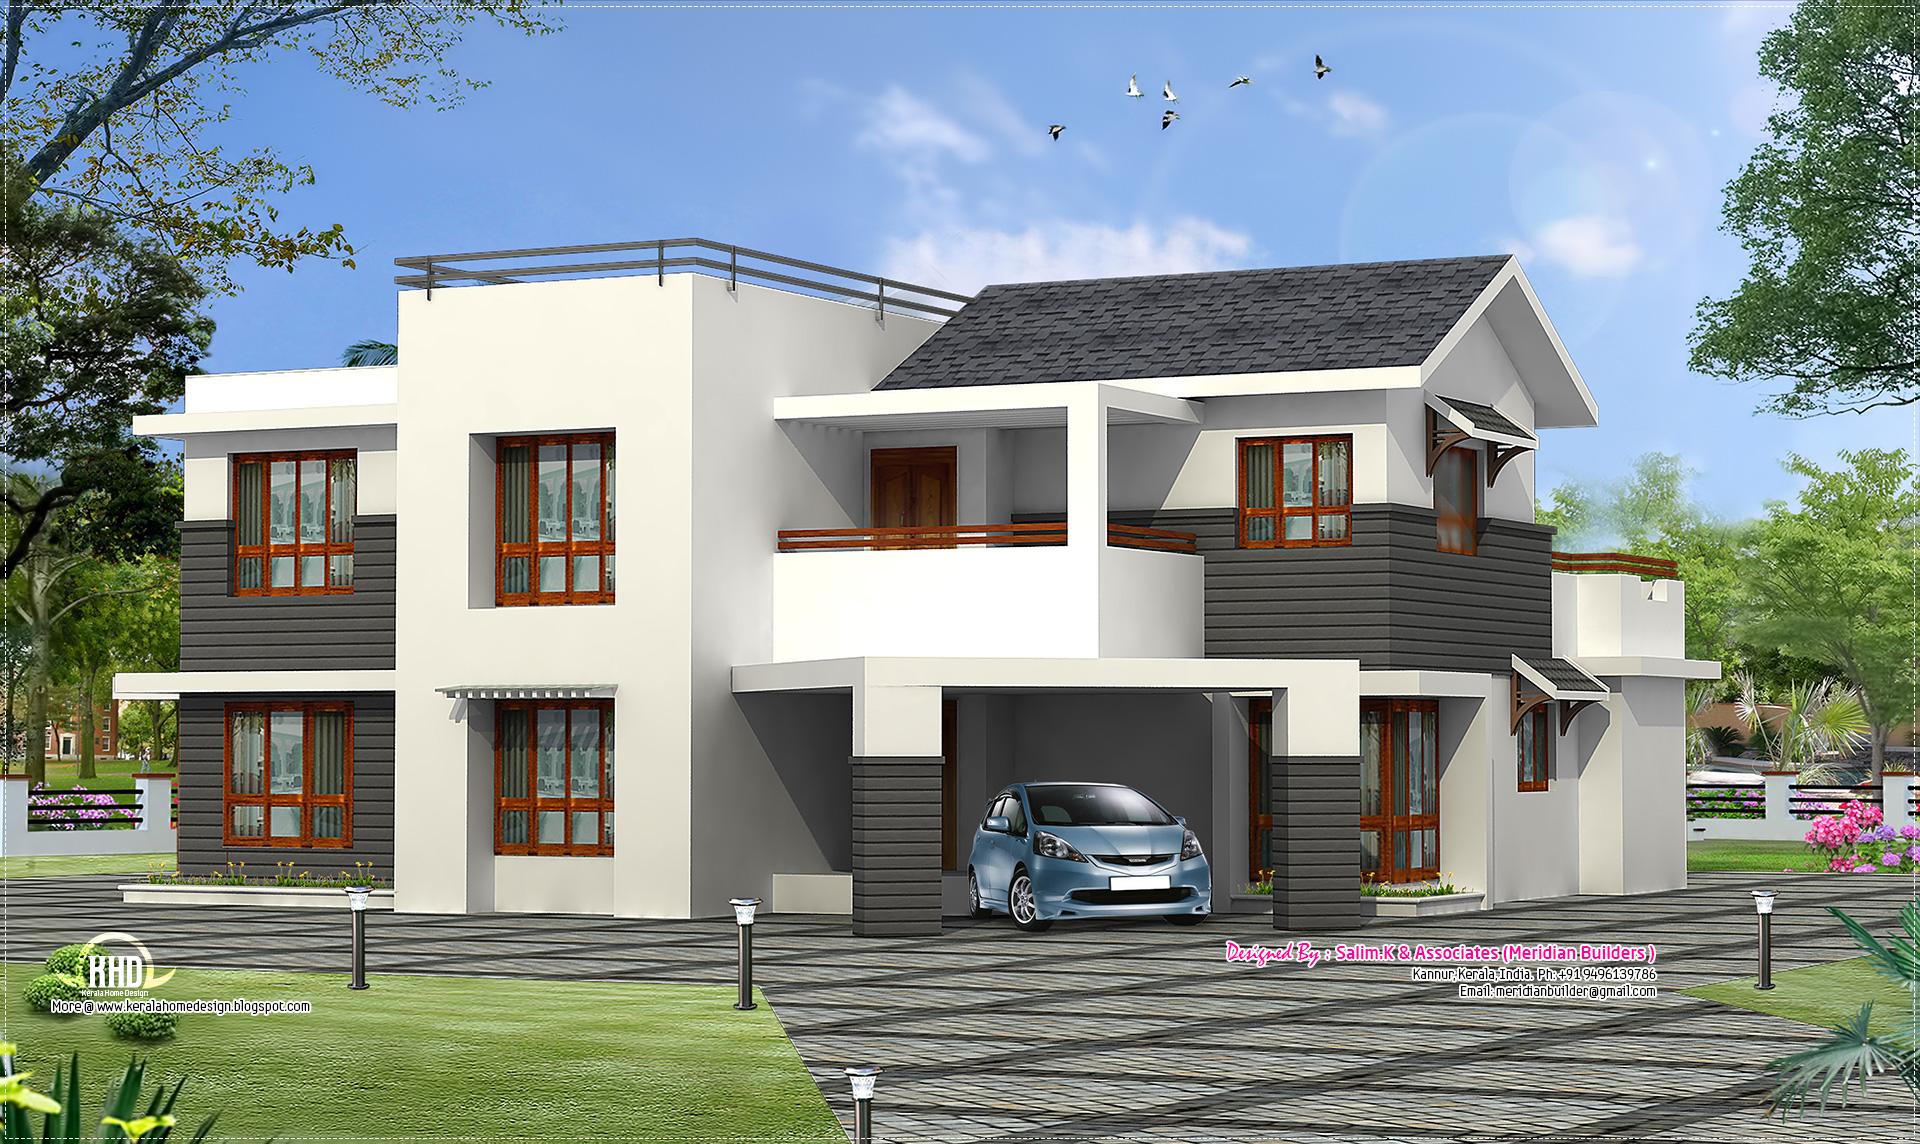 Contemporary villa design from kannur kerala kerala for 3000 sq ft building